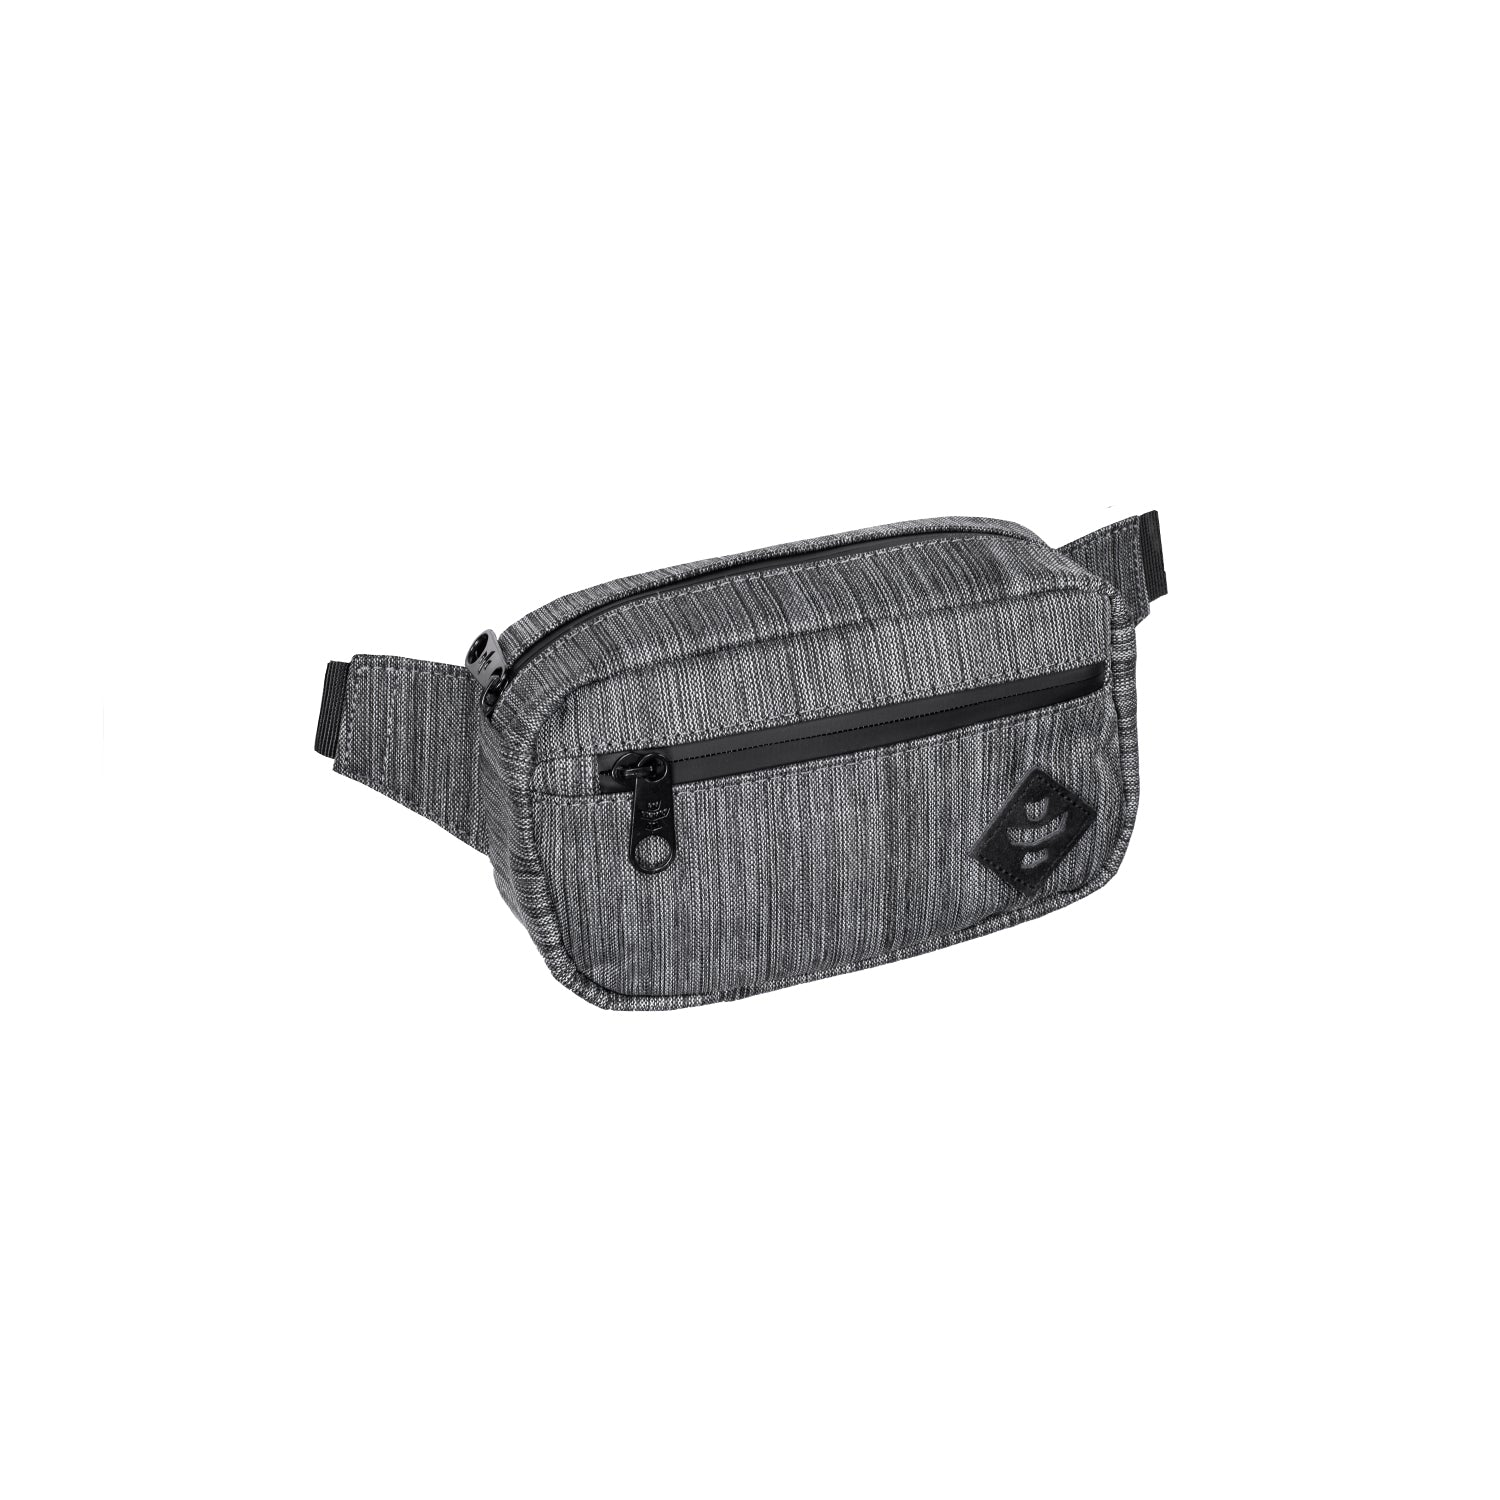 Dark Striped Grey Nylon Smell Proof Water Resistant Crossbody Bag